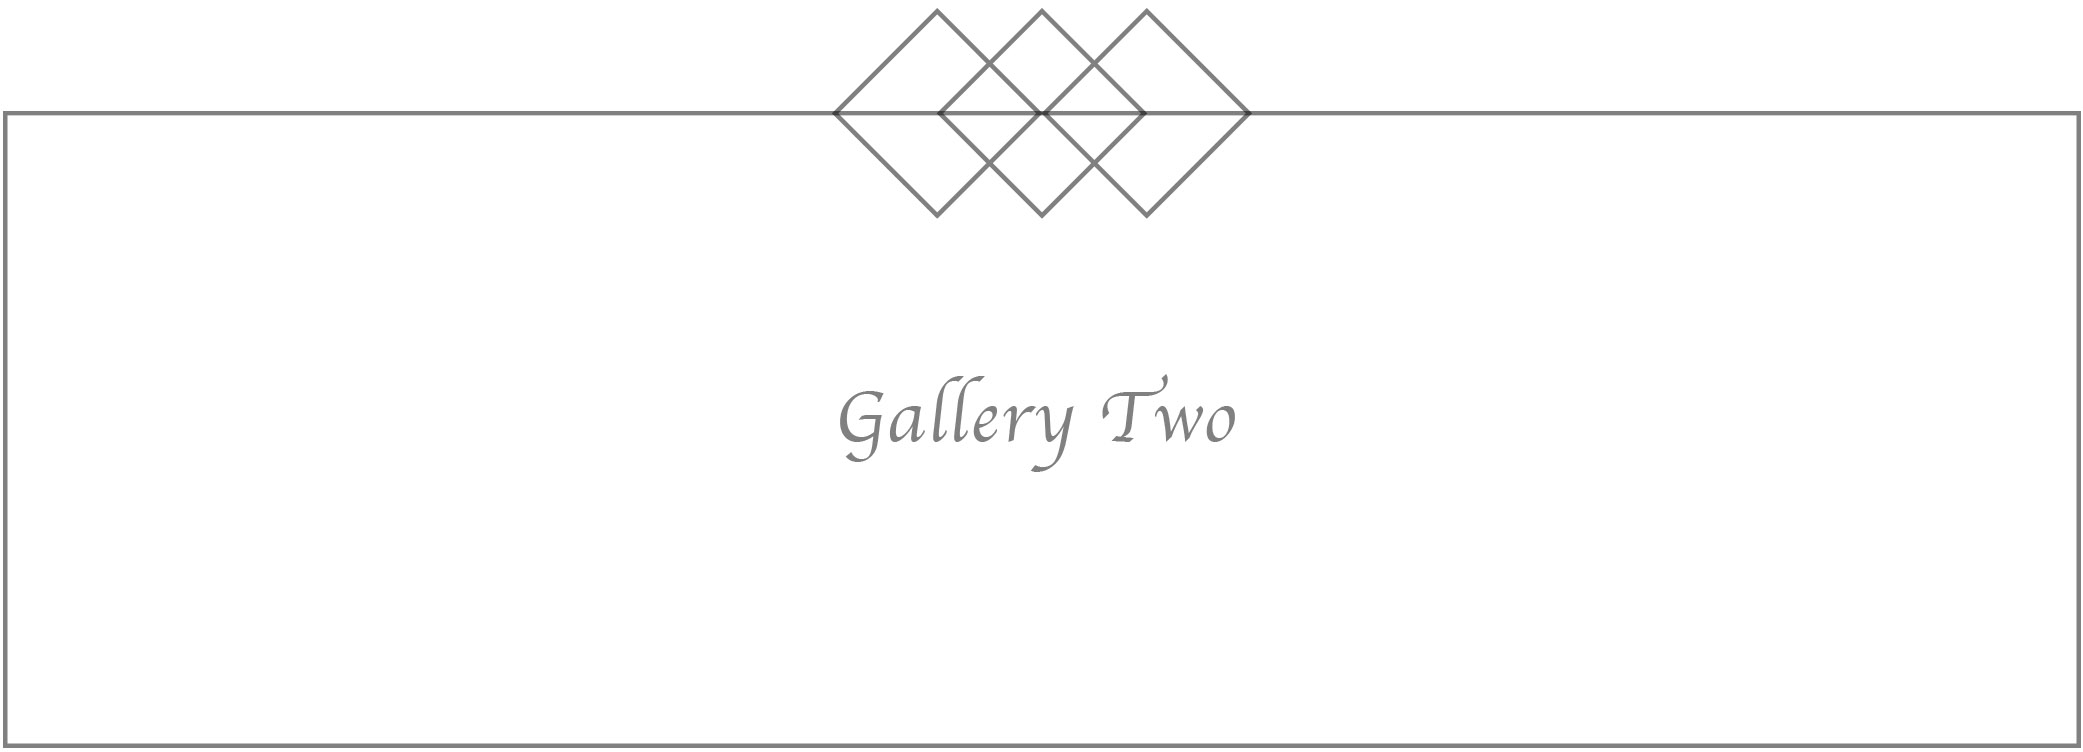 weddinggallerybutton2.jpg